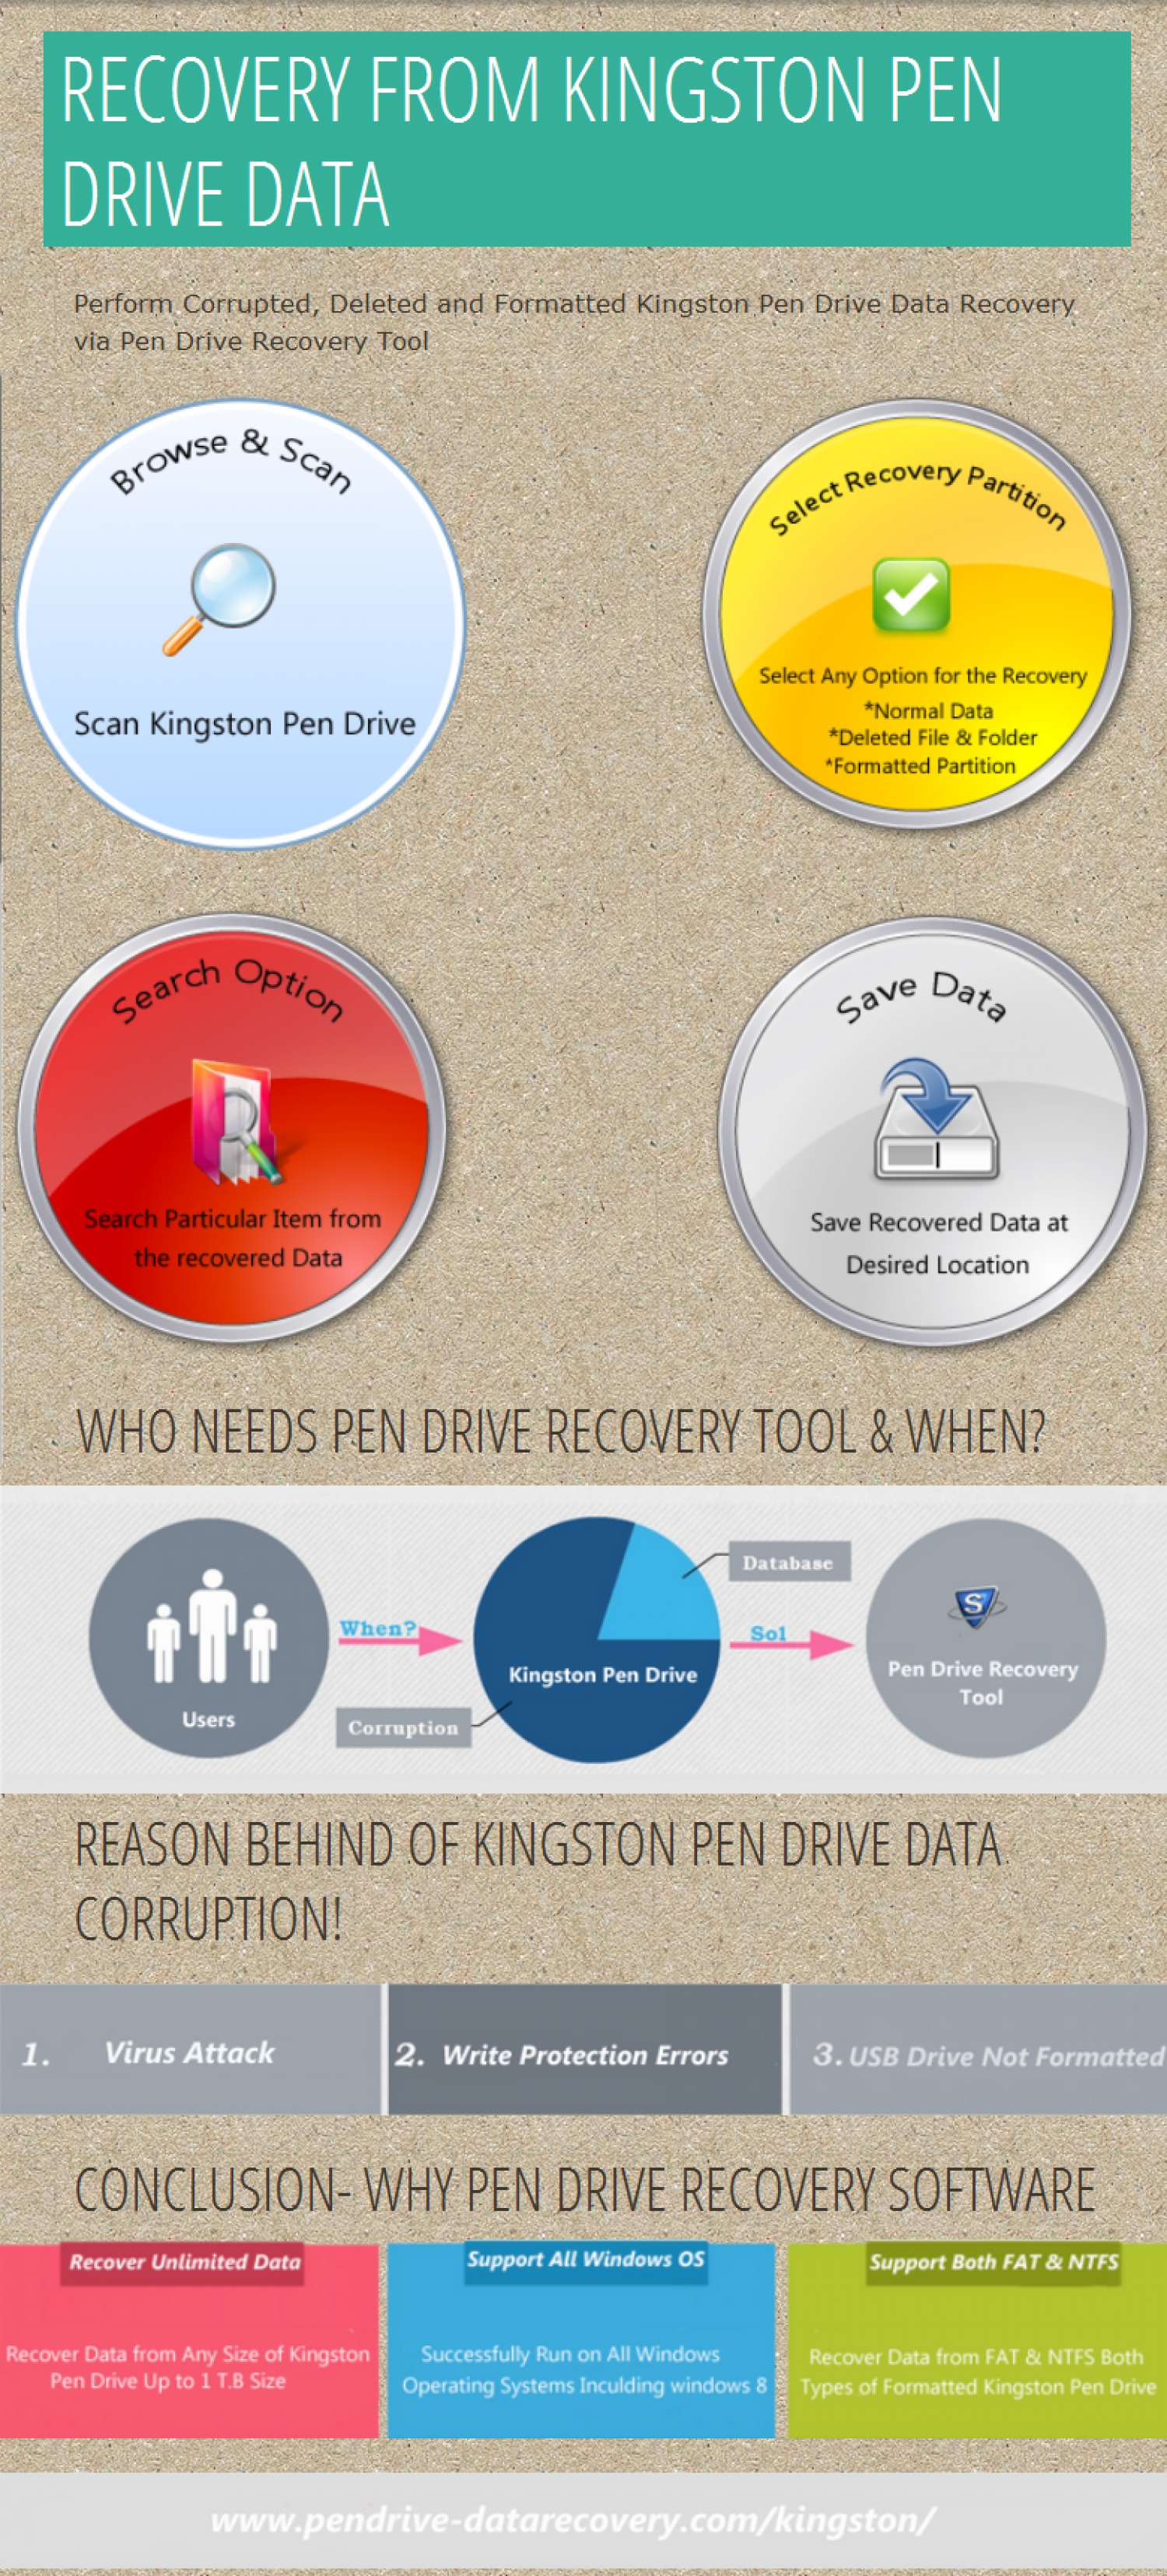 RECOVERY FROM KINGSTON PEN DRIVE DATA Infographic